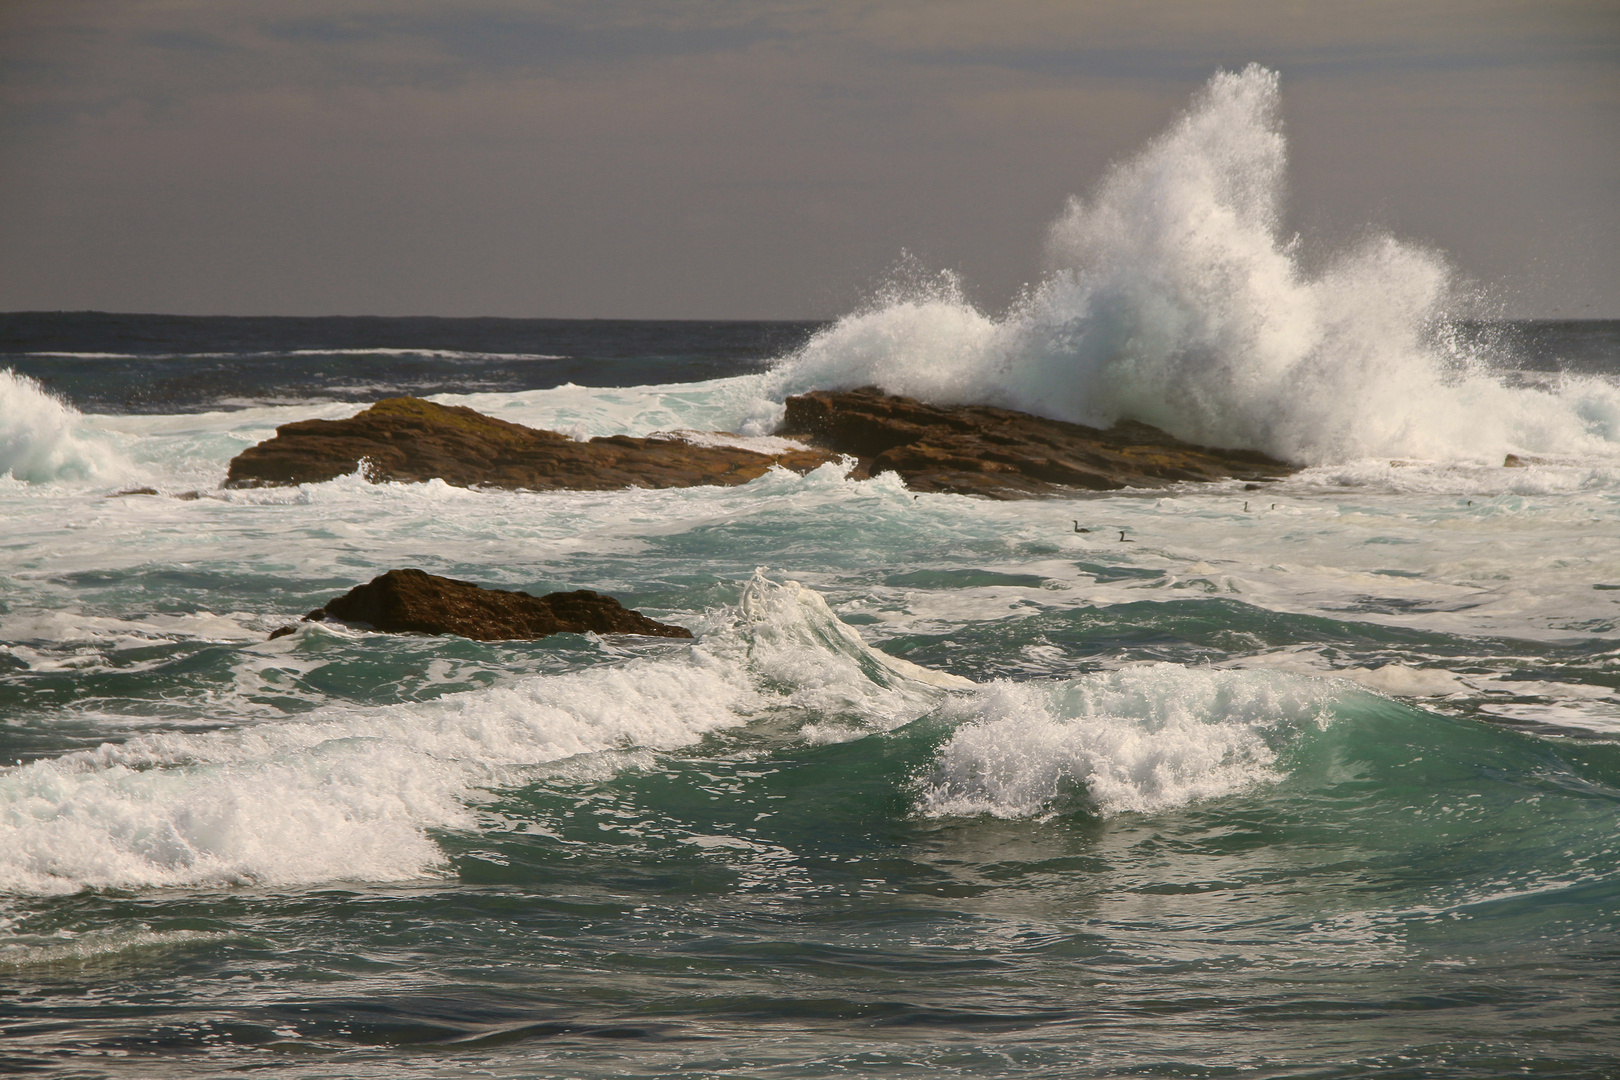 Cape Point, South Africa, 2012